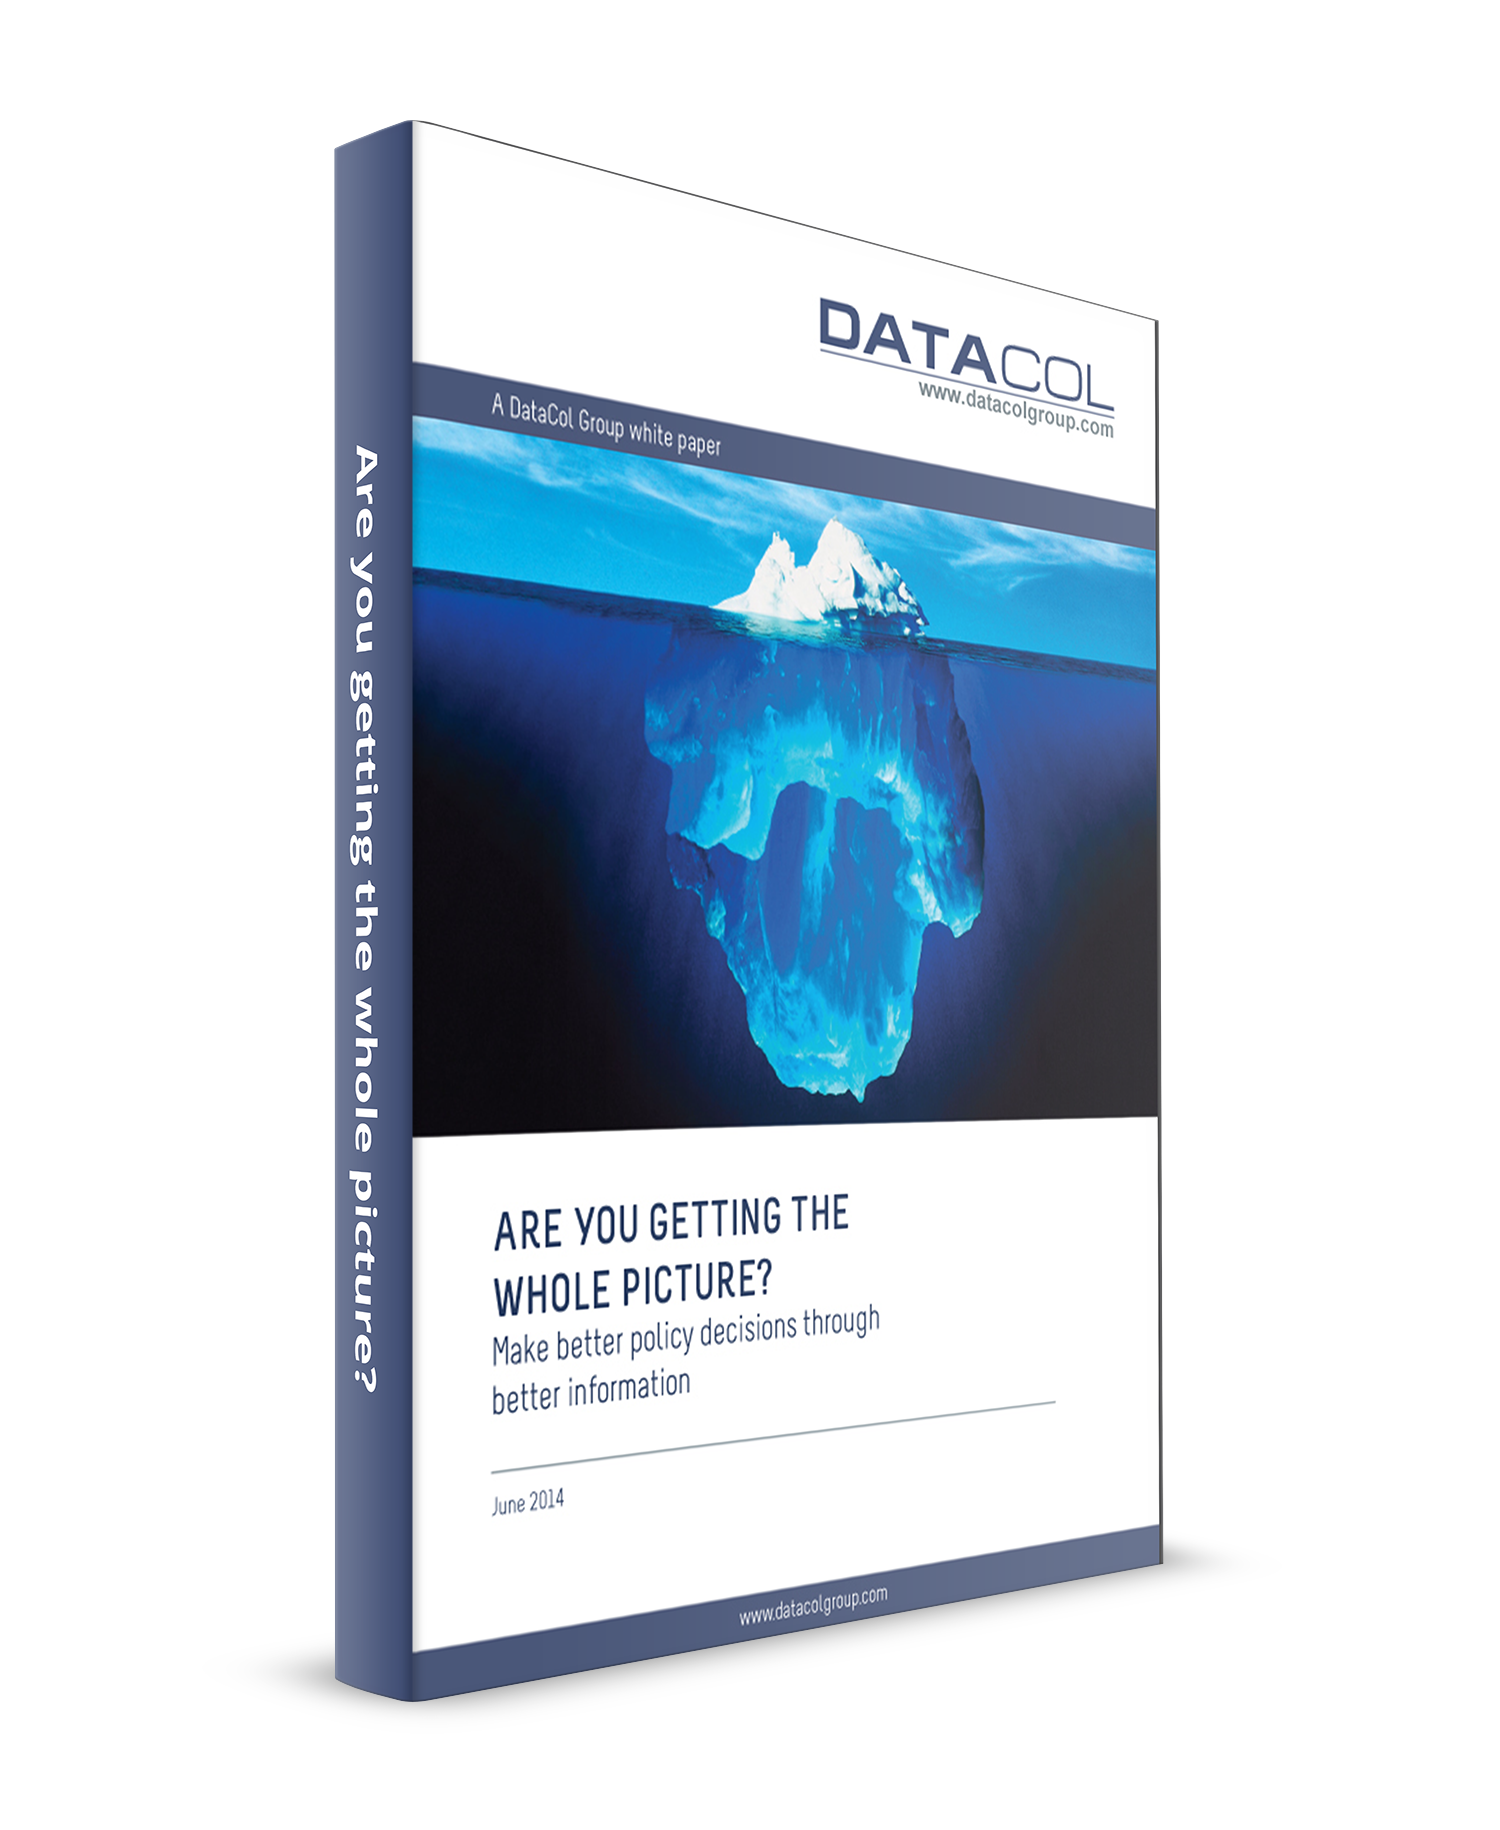 DataCol Smarter Data Whole Picture WP 3Dcover.png